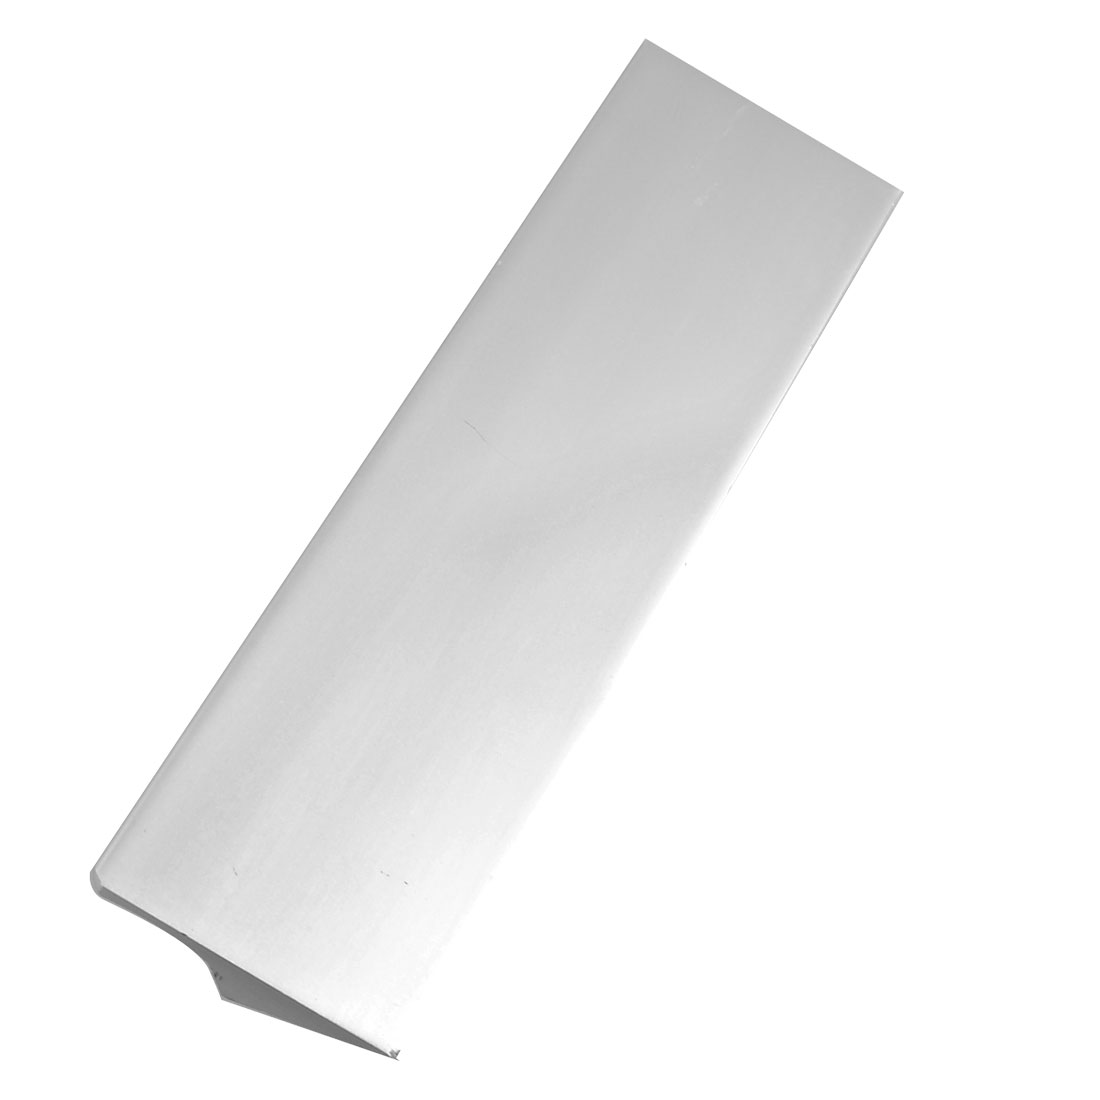 "Hardware 6.2"" Long Cupboard Cabinet Aluminum Pull Handle"